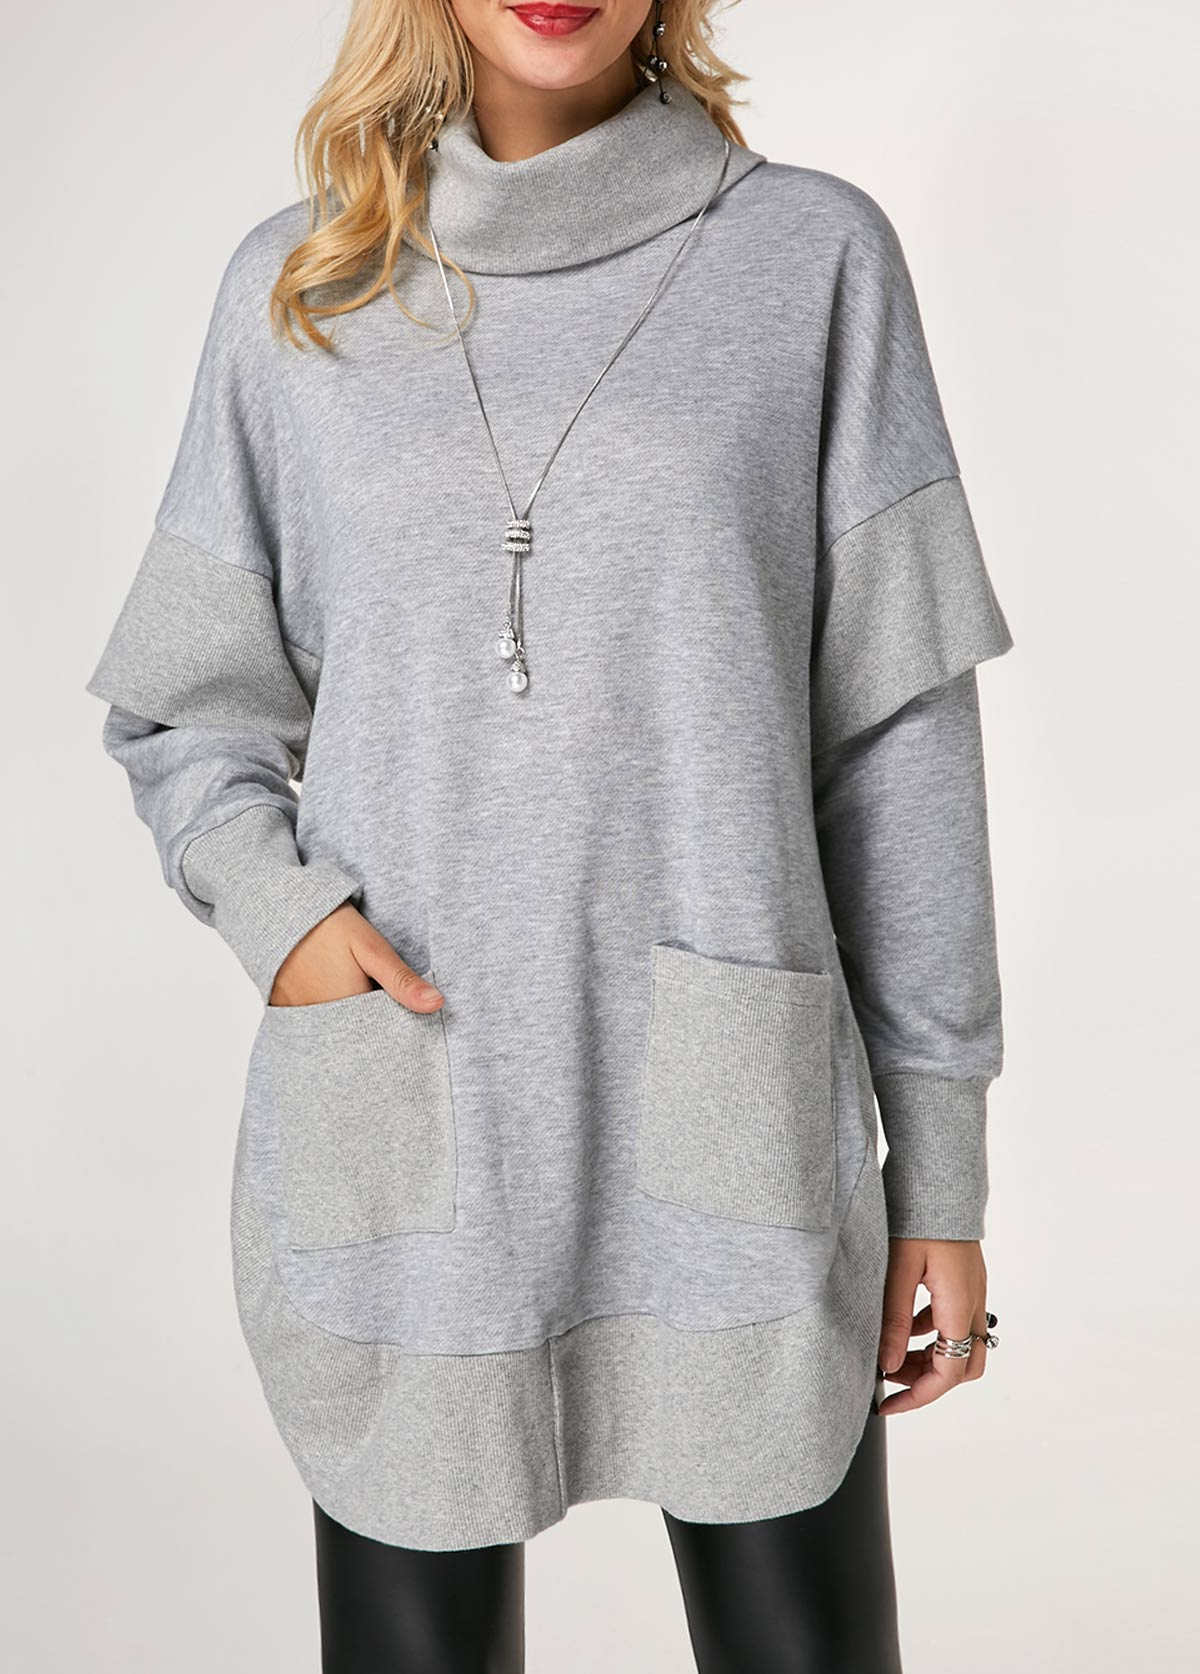 Turtleneck Long Sleeve Pocket Side Slit Sweatshirt